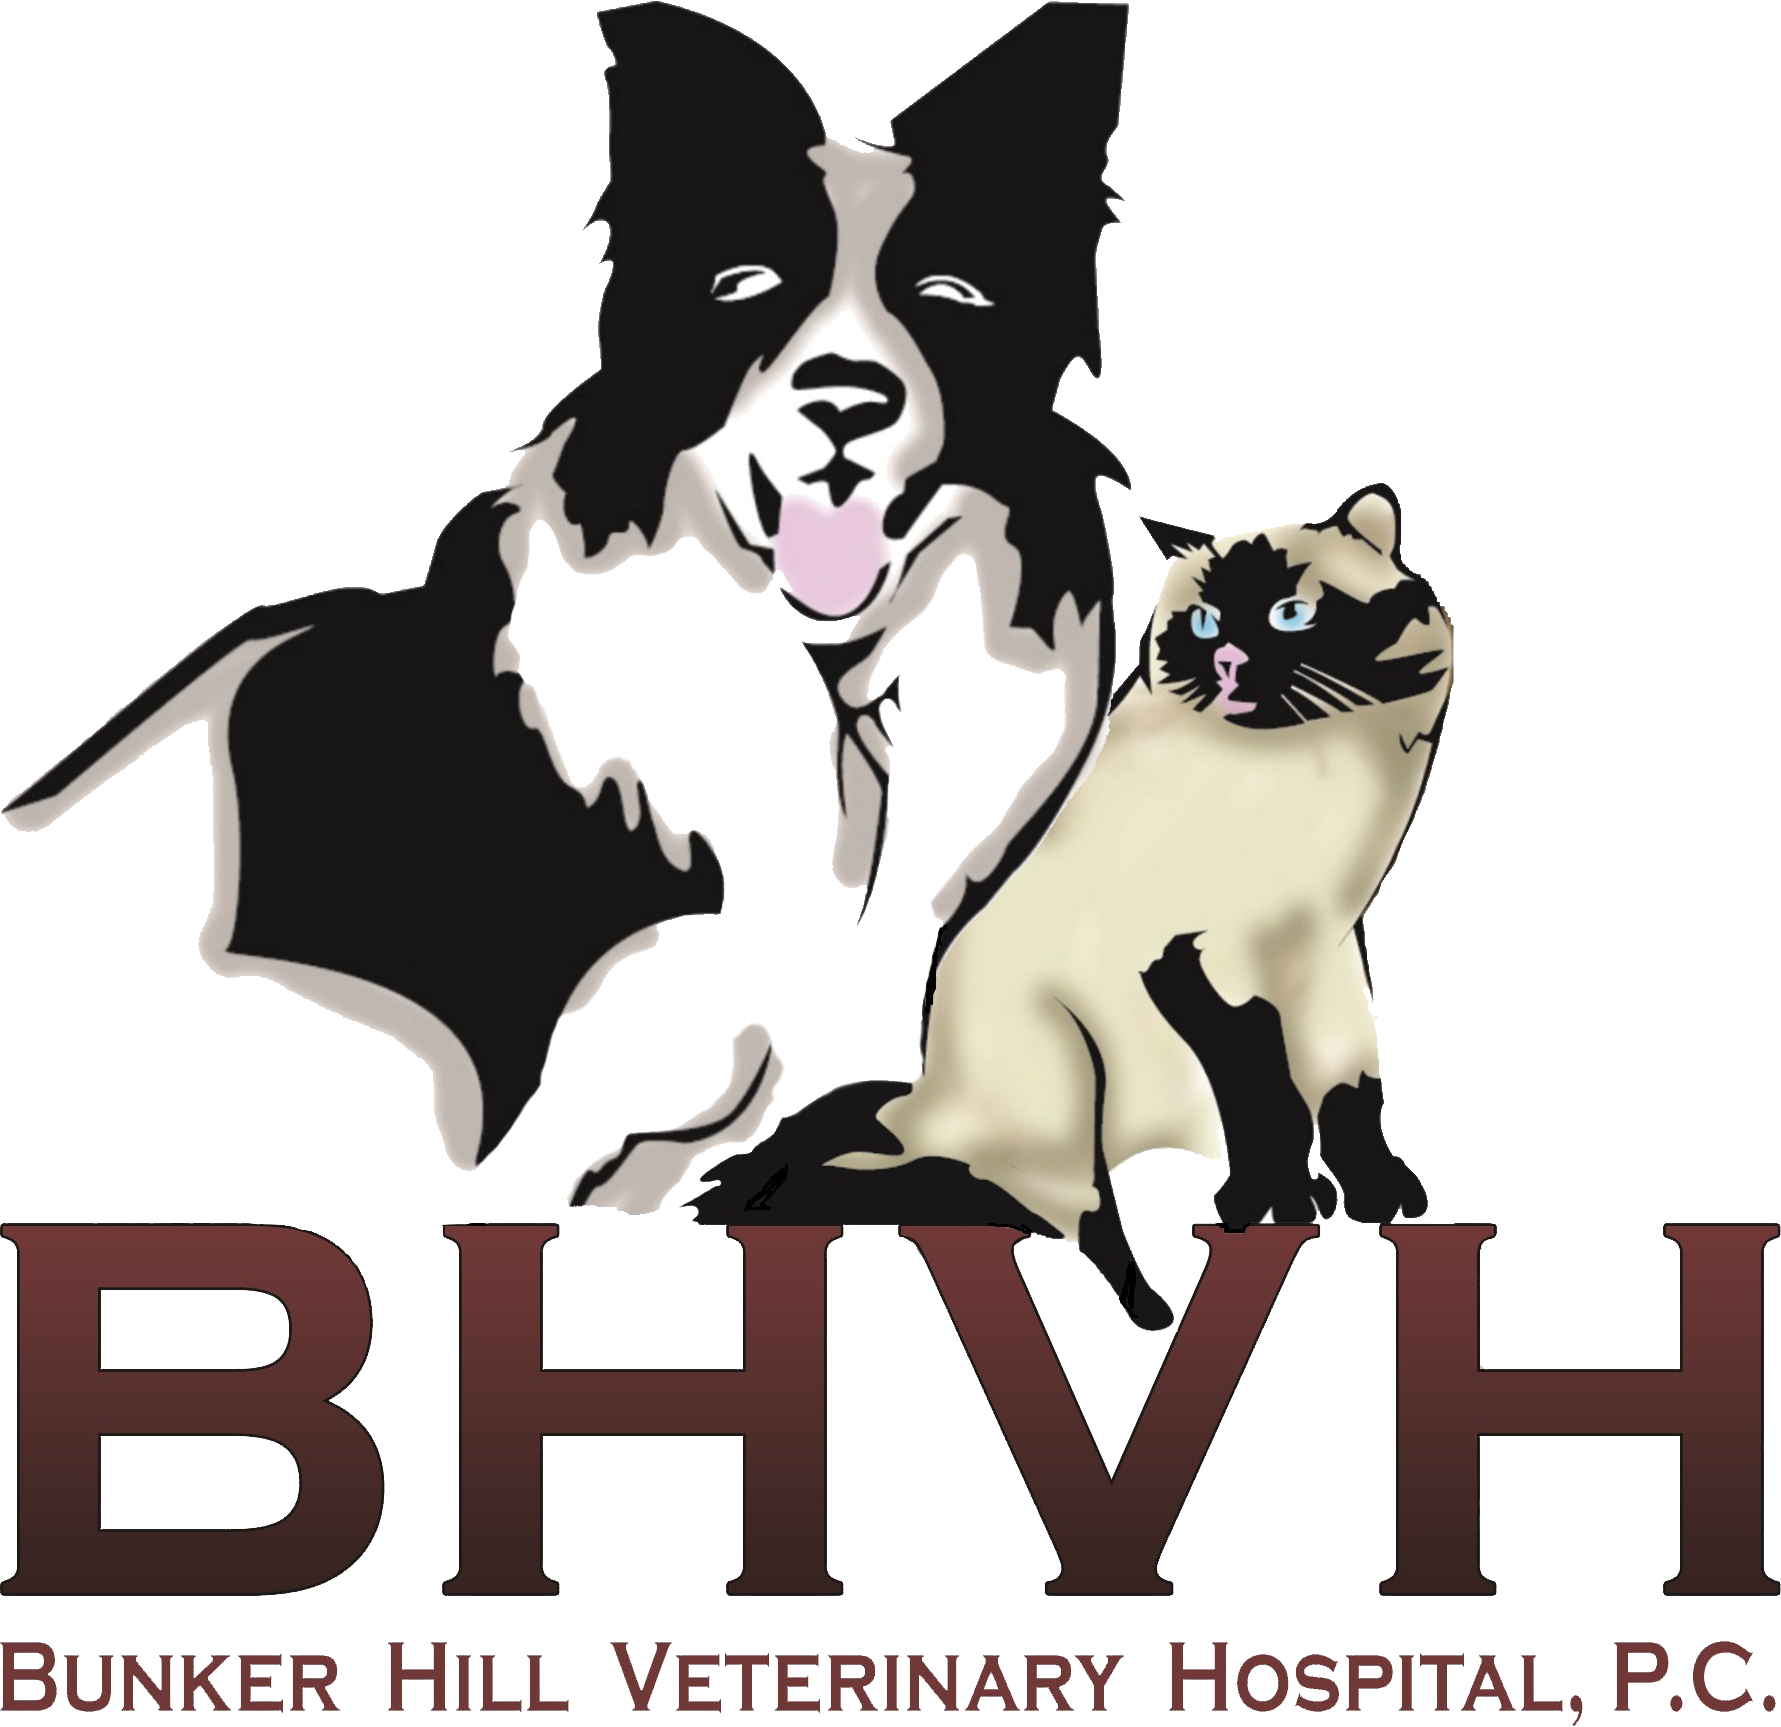 Bunker Hill Veterinary Hospital, P.C.